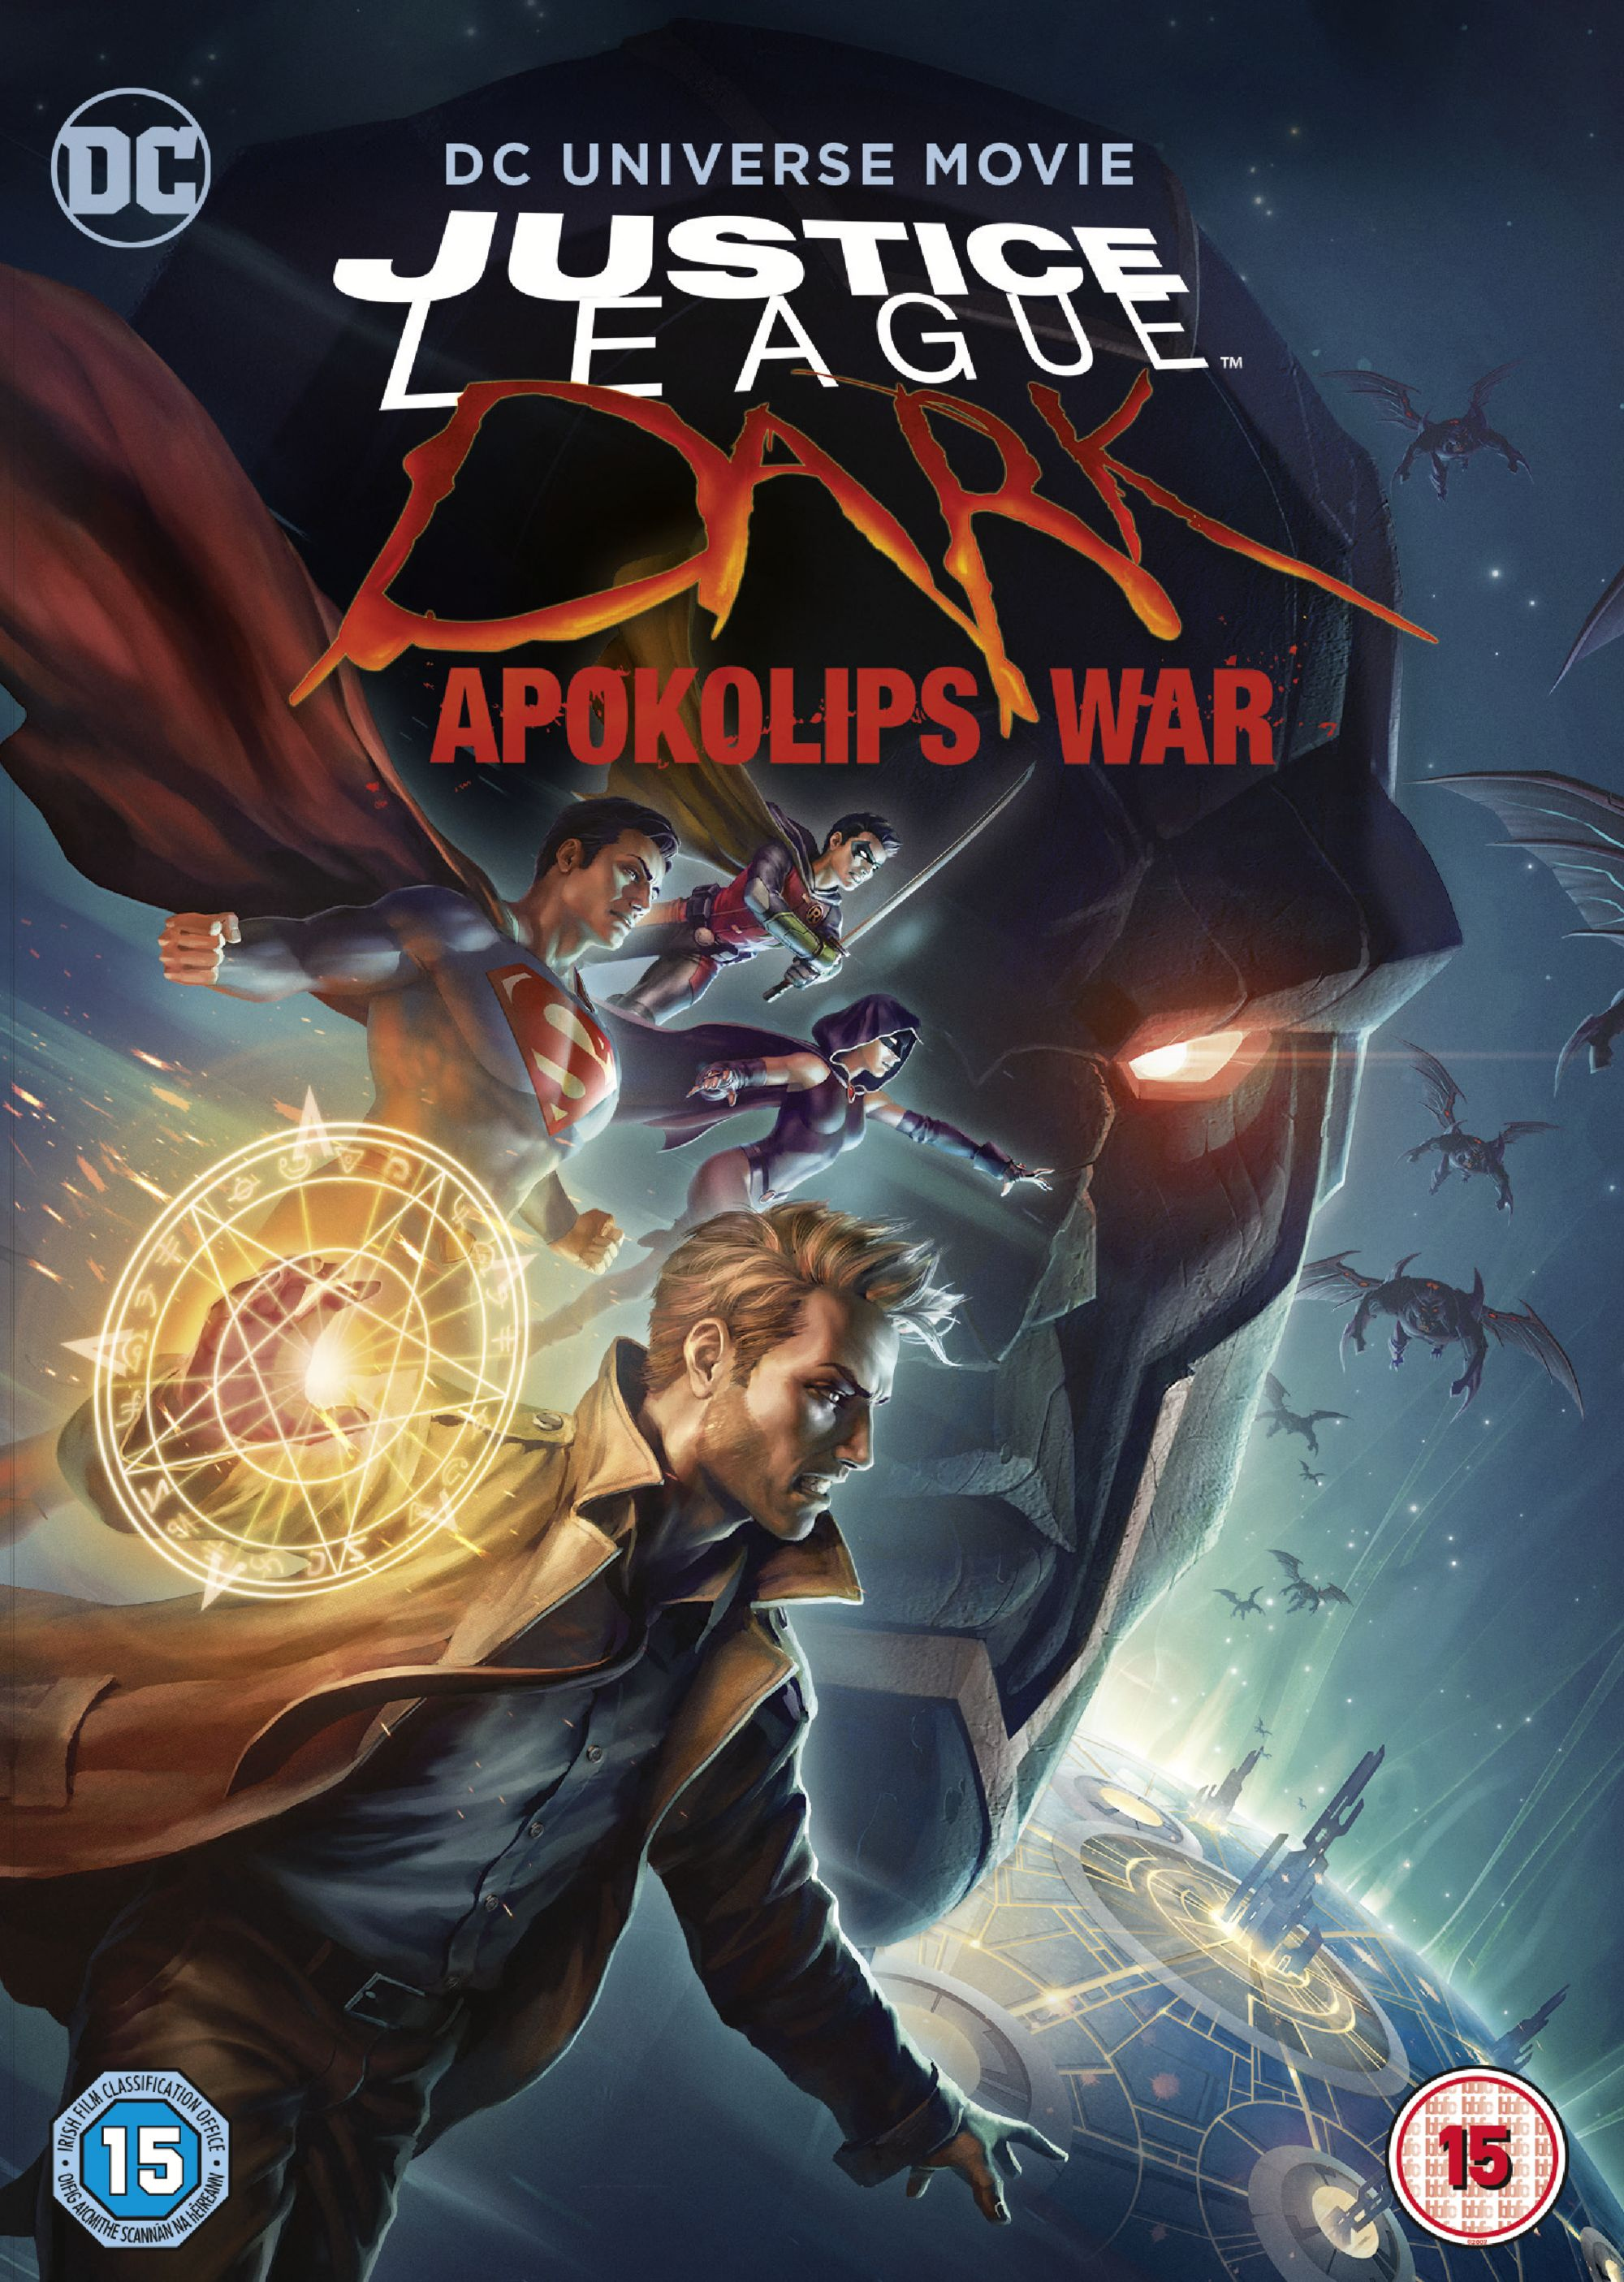 Justice-League-Dark-Apokolips-War-2020-DVD-Roger-R-Cross-Rosario-Dawson